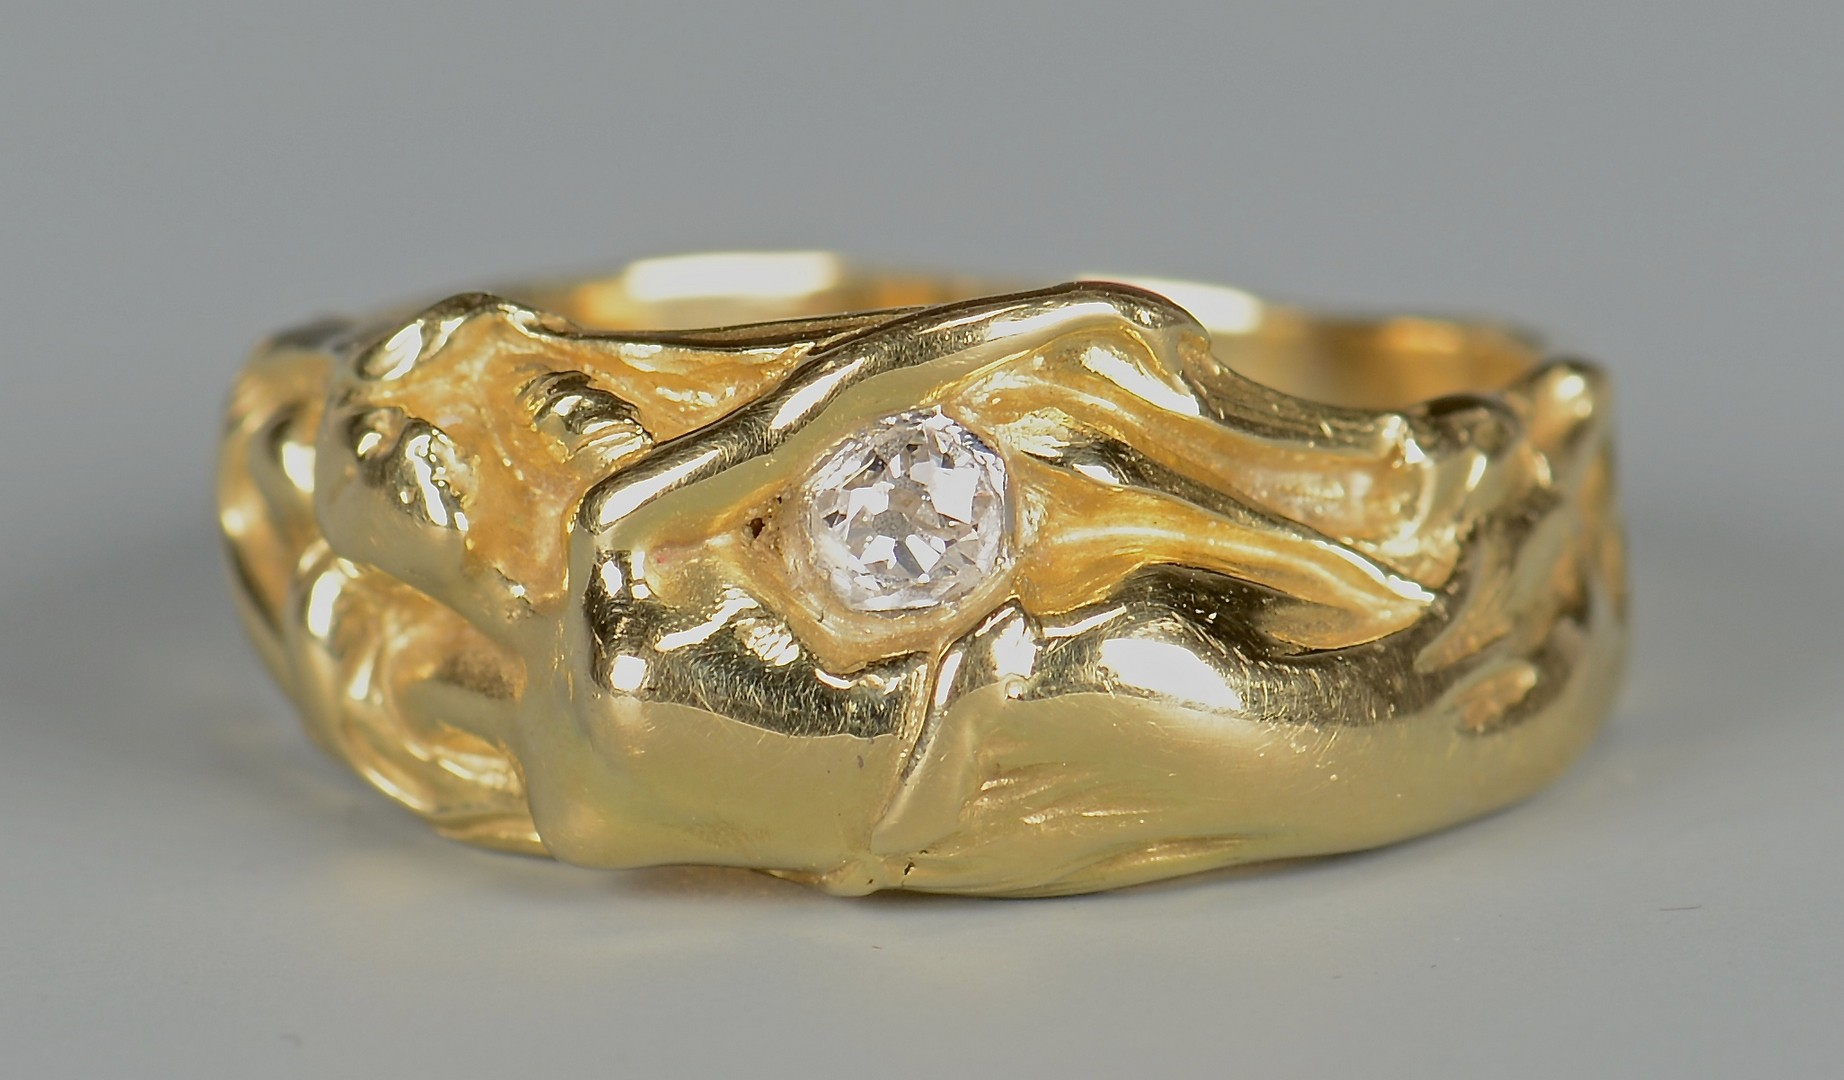 Lot 398: 18K Art Nouveau Female Nude Ring